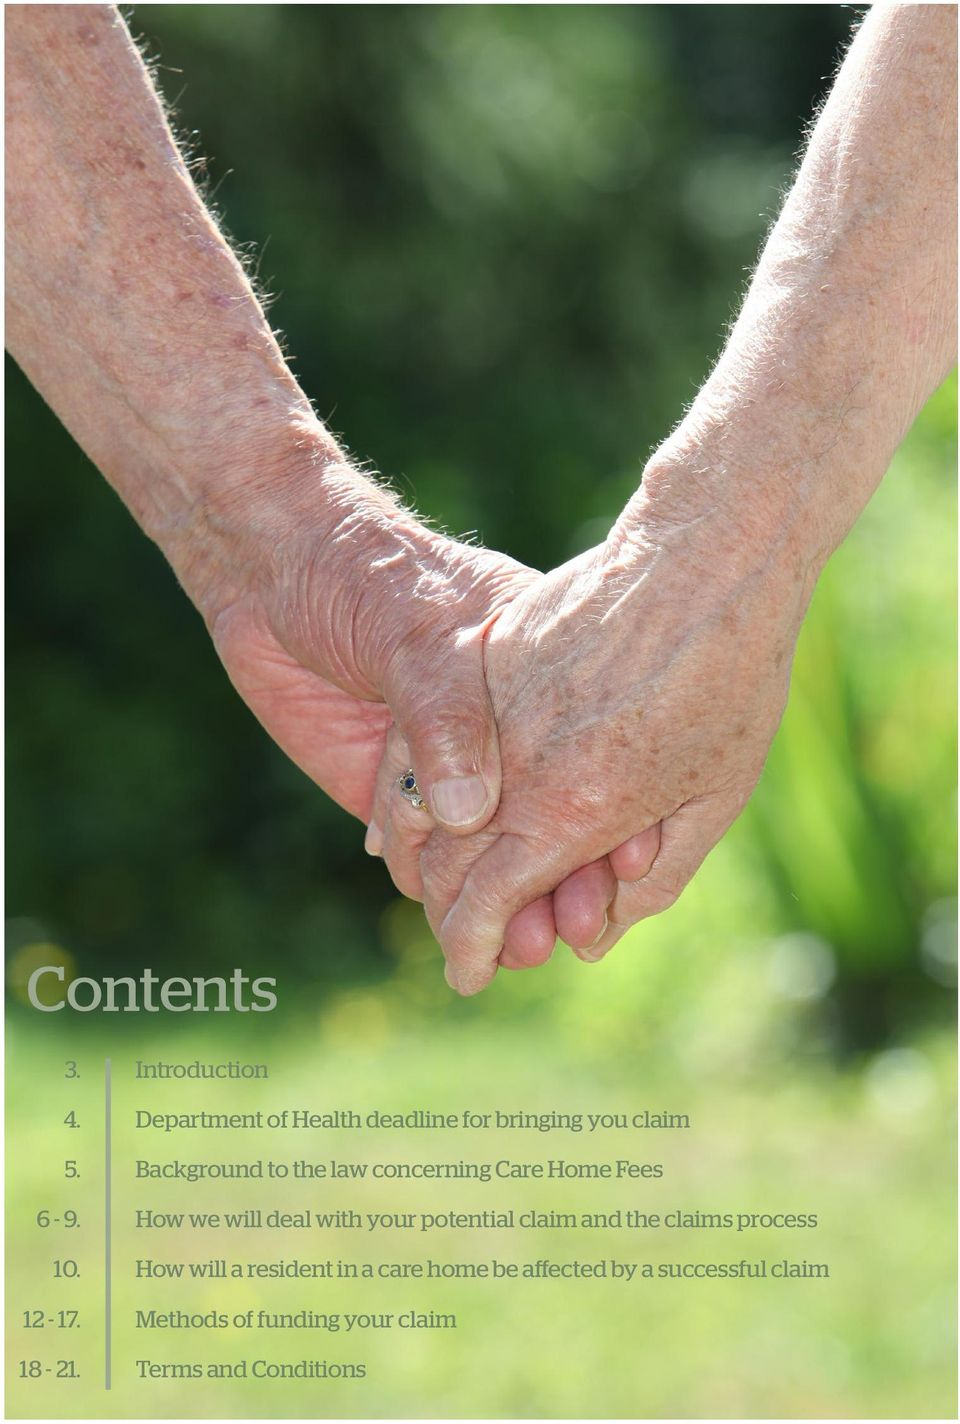 law concerning Care Home Fees How we will deal with your potential claim and the